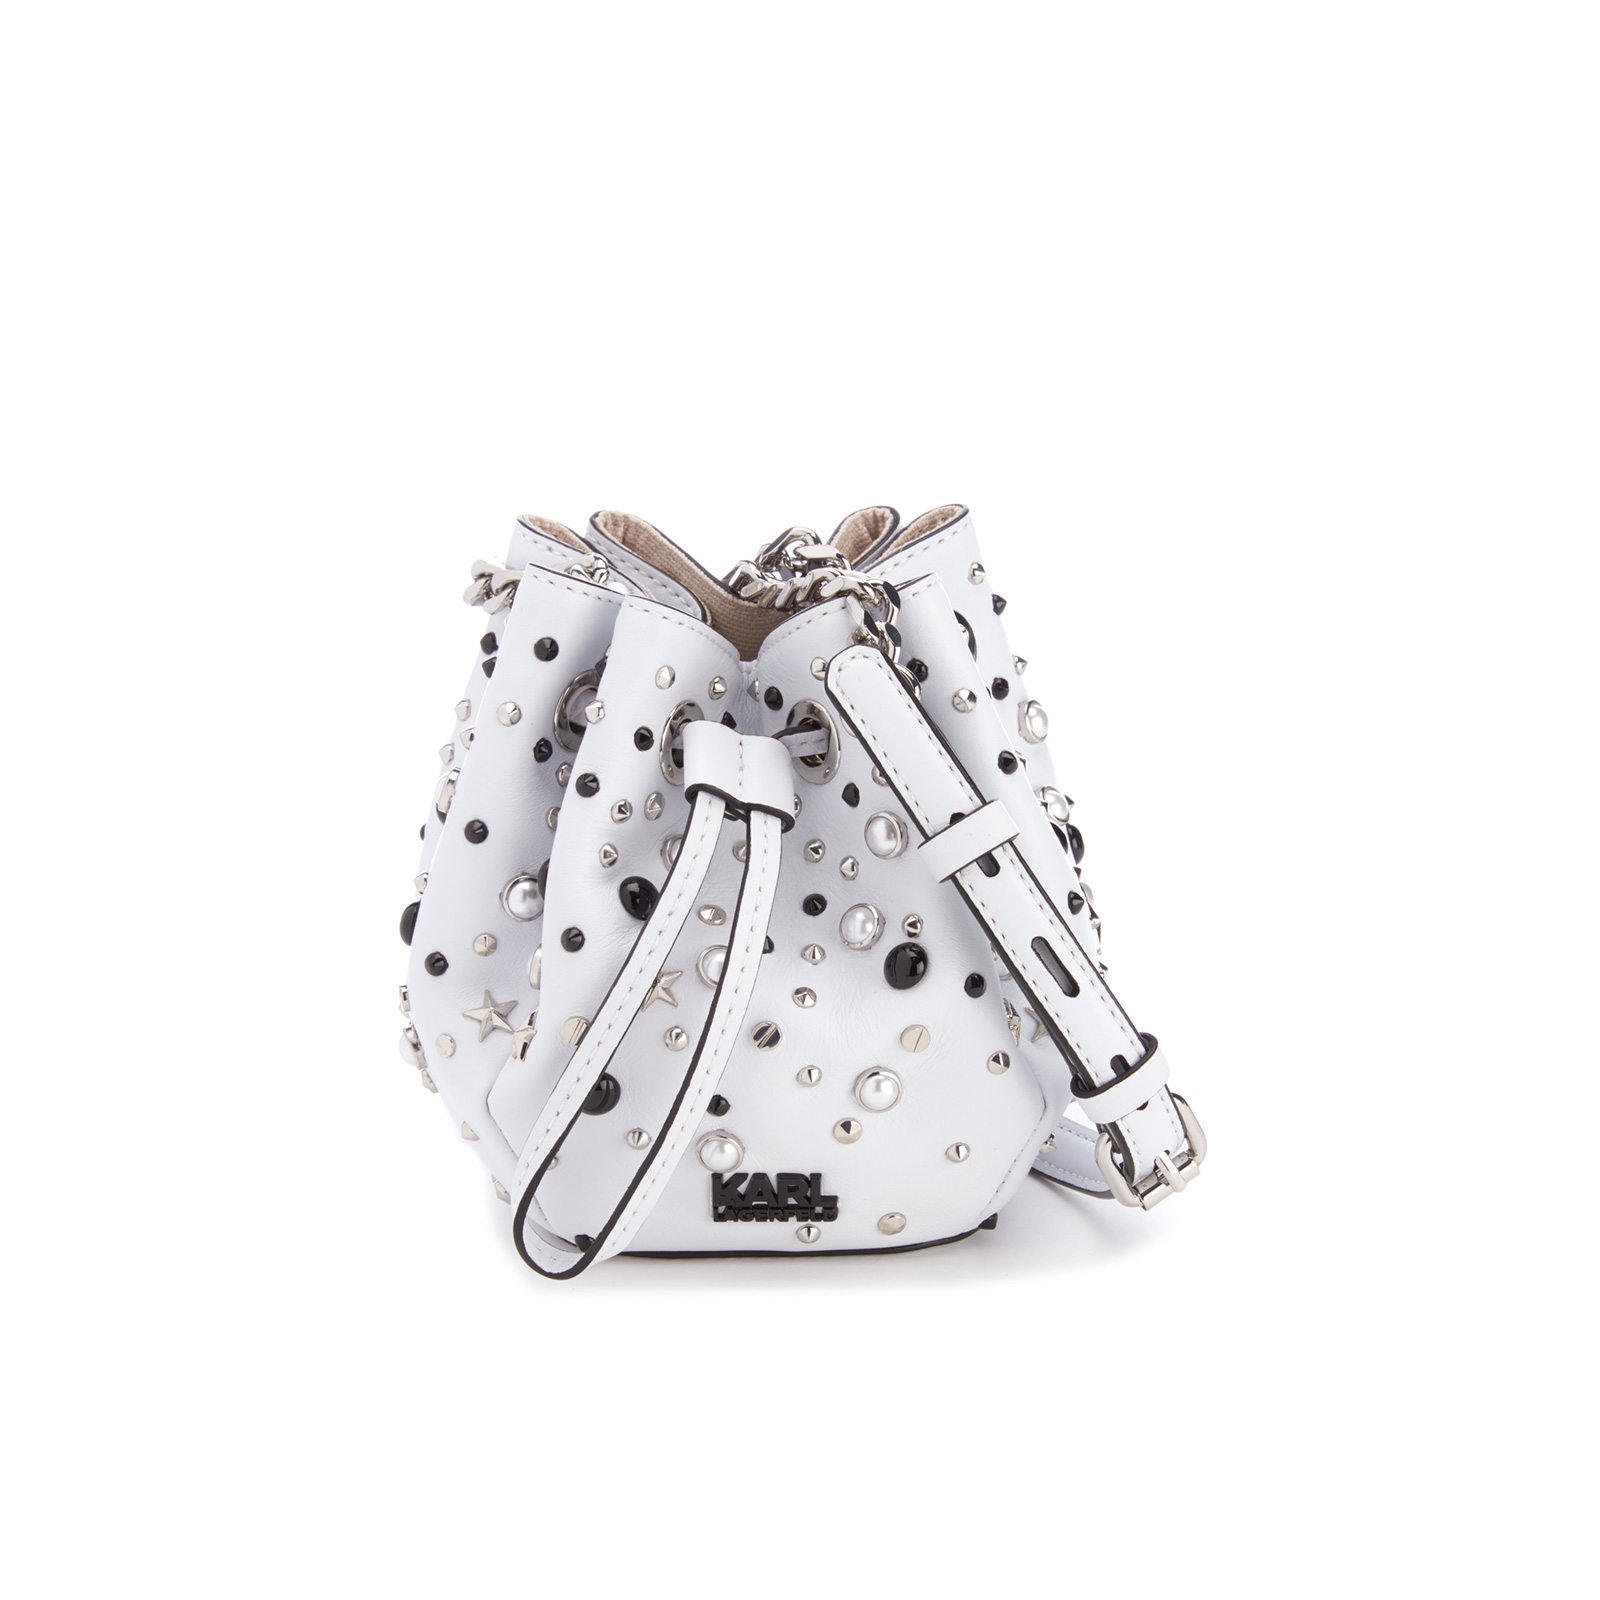 59de4a3f98d Karl Lagerfeld Women's K/Rocky Stud Drawstring Bag - White - Free UK  Delivery over £50